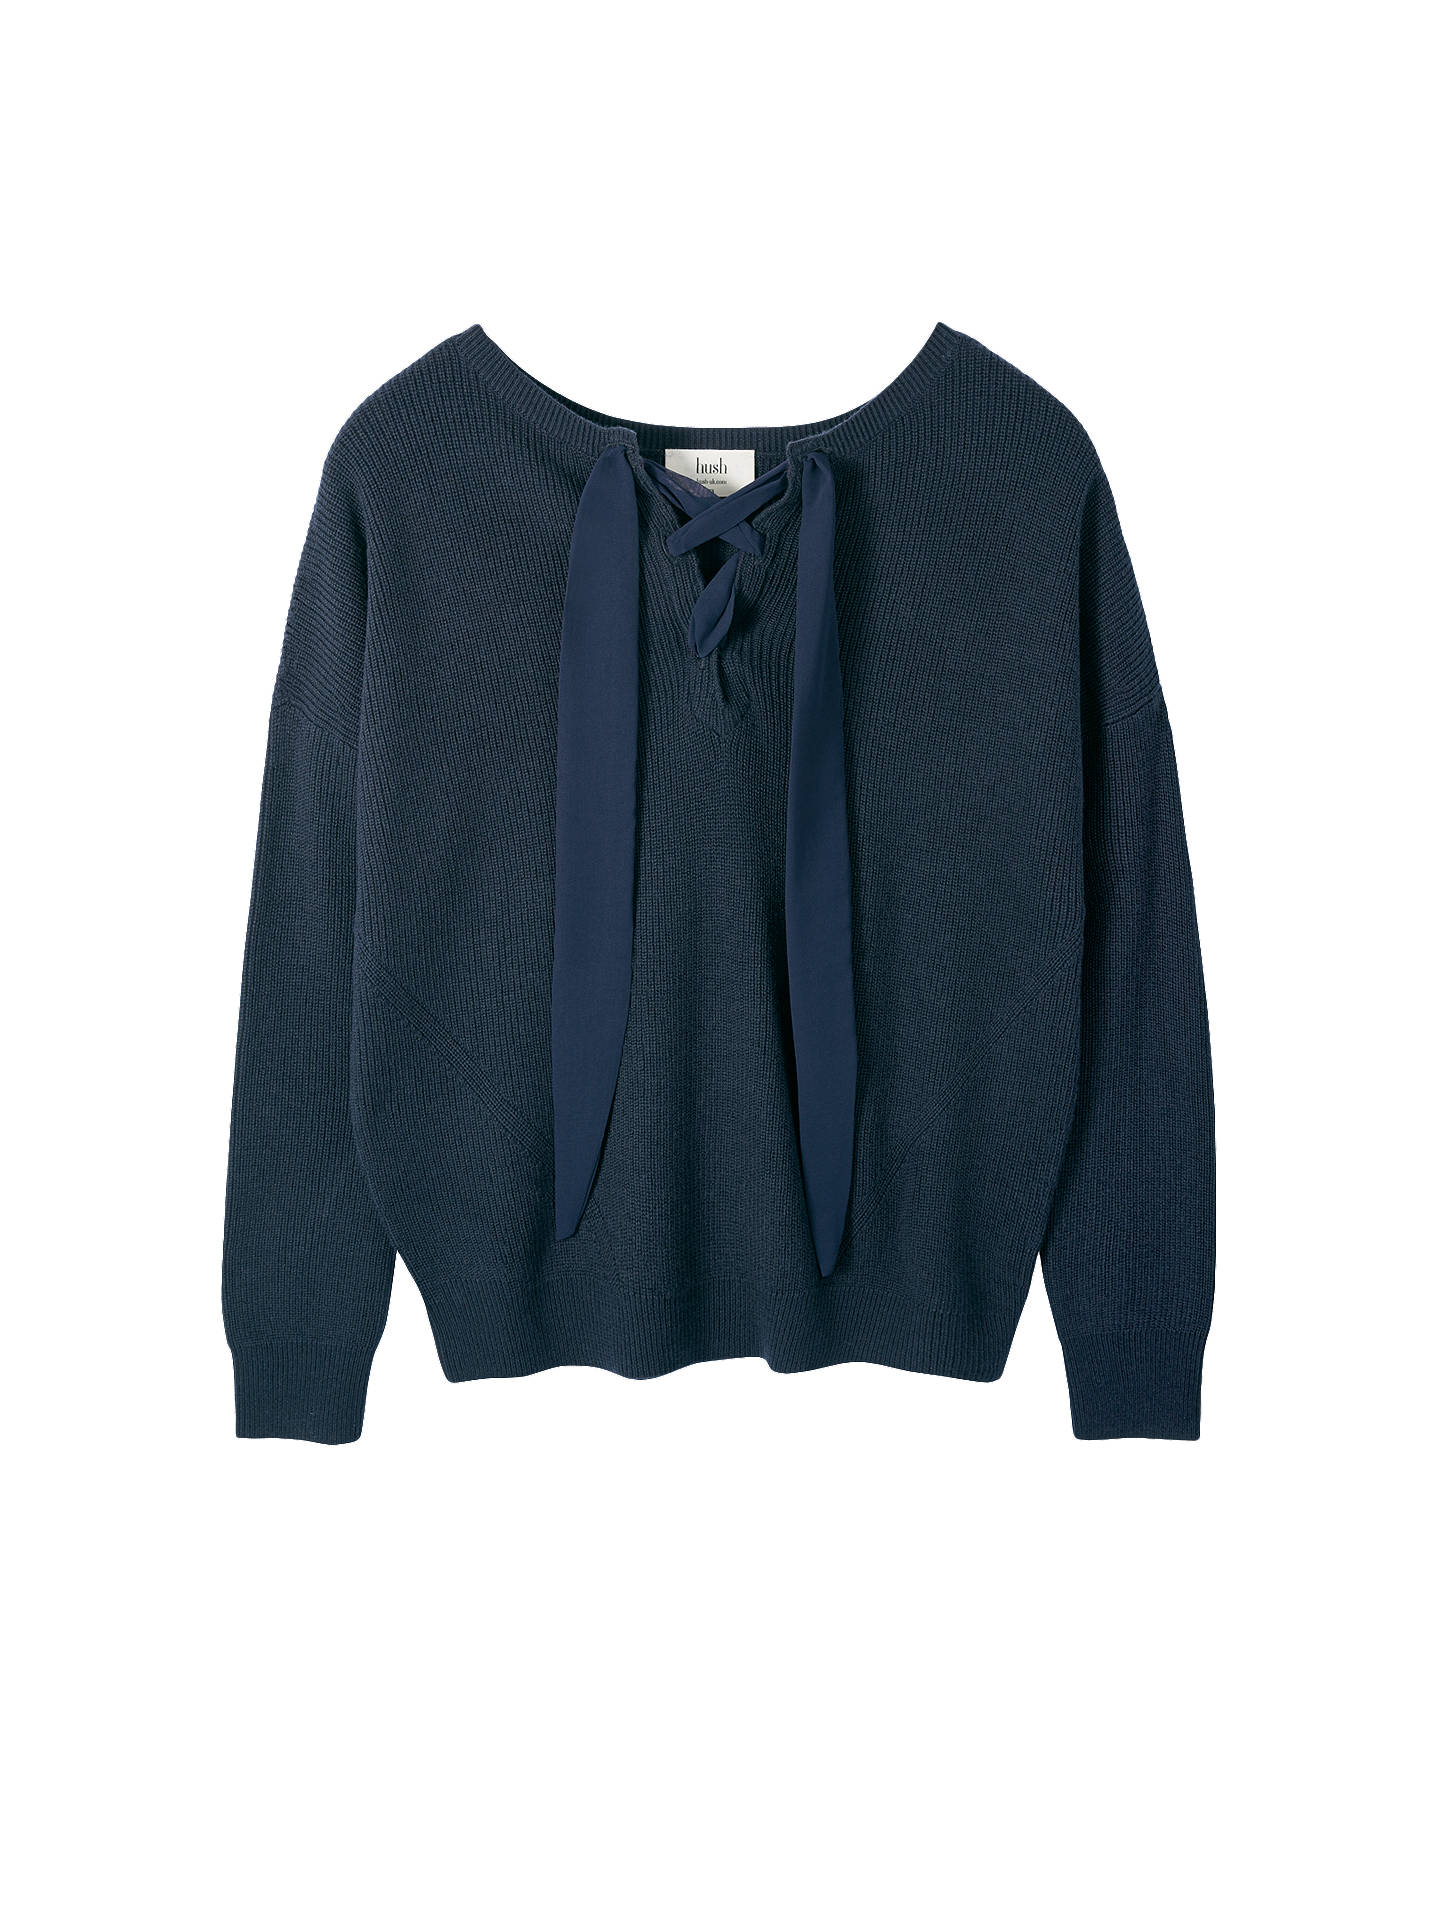 Buyhush Lacey Jumper, Midnight, XS Online at johnlewis.com